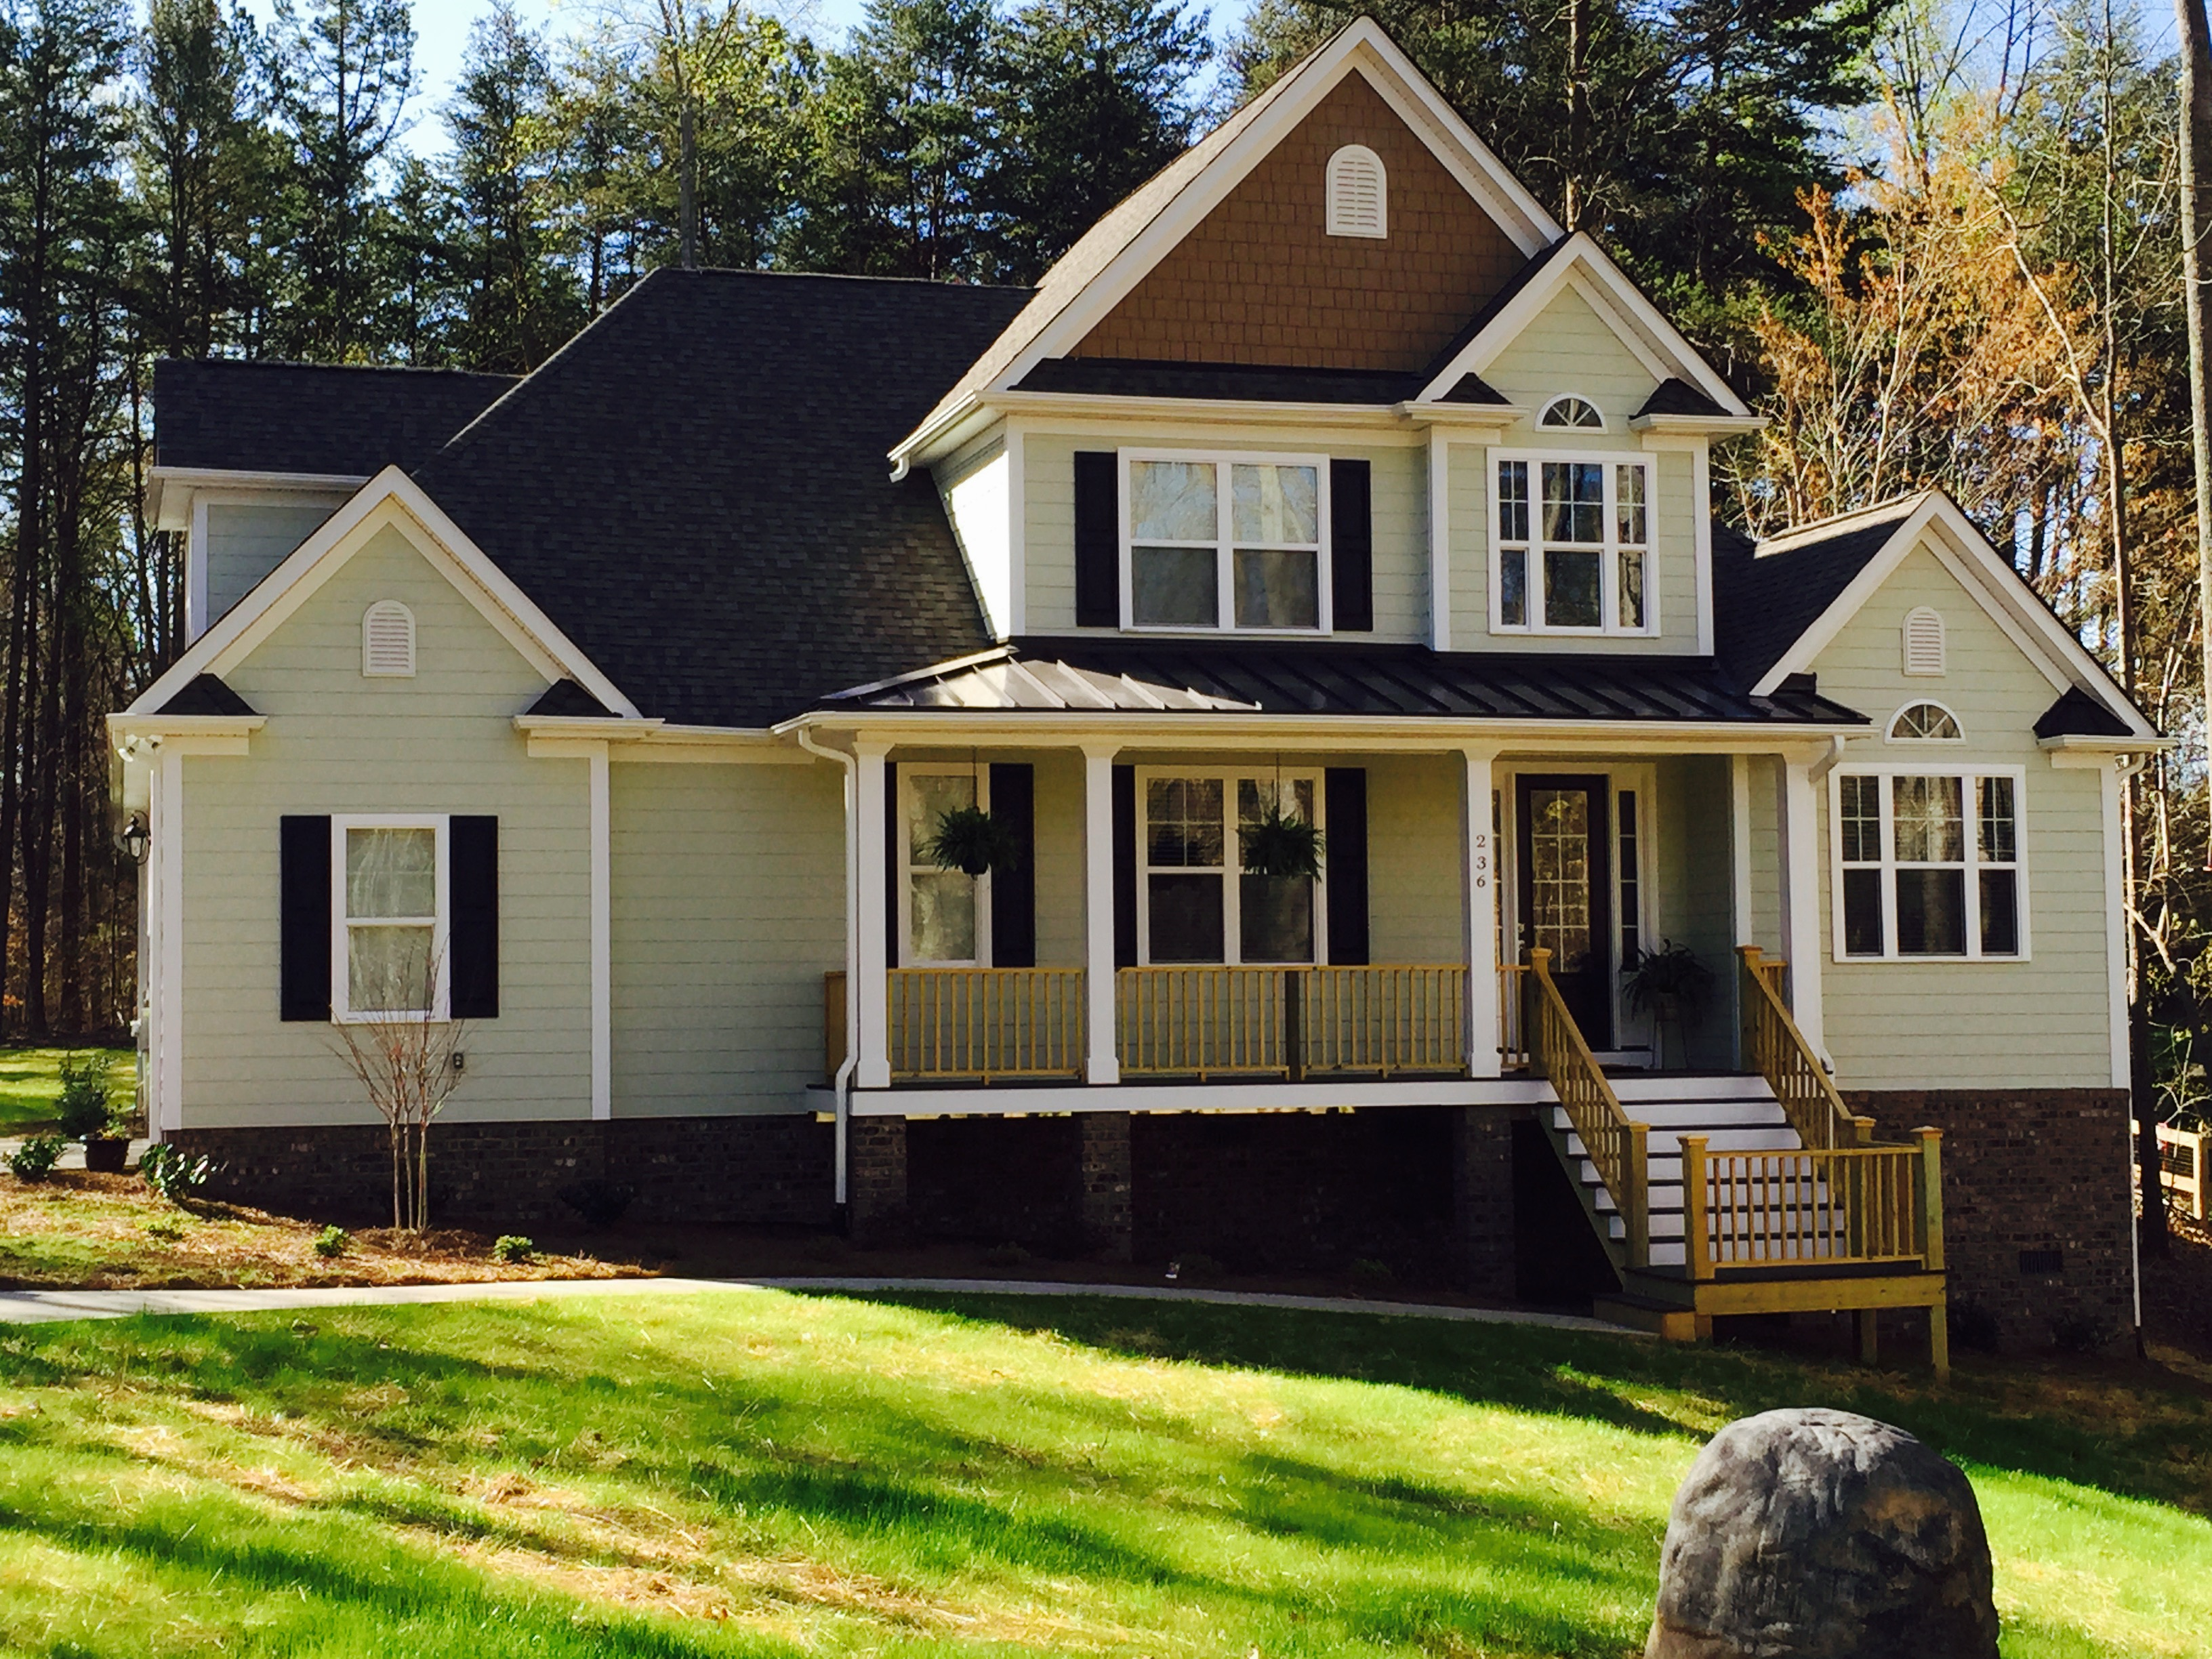 New Custom Home in Lake Norman, Mooresville NC by HBG Cornelius NC